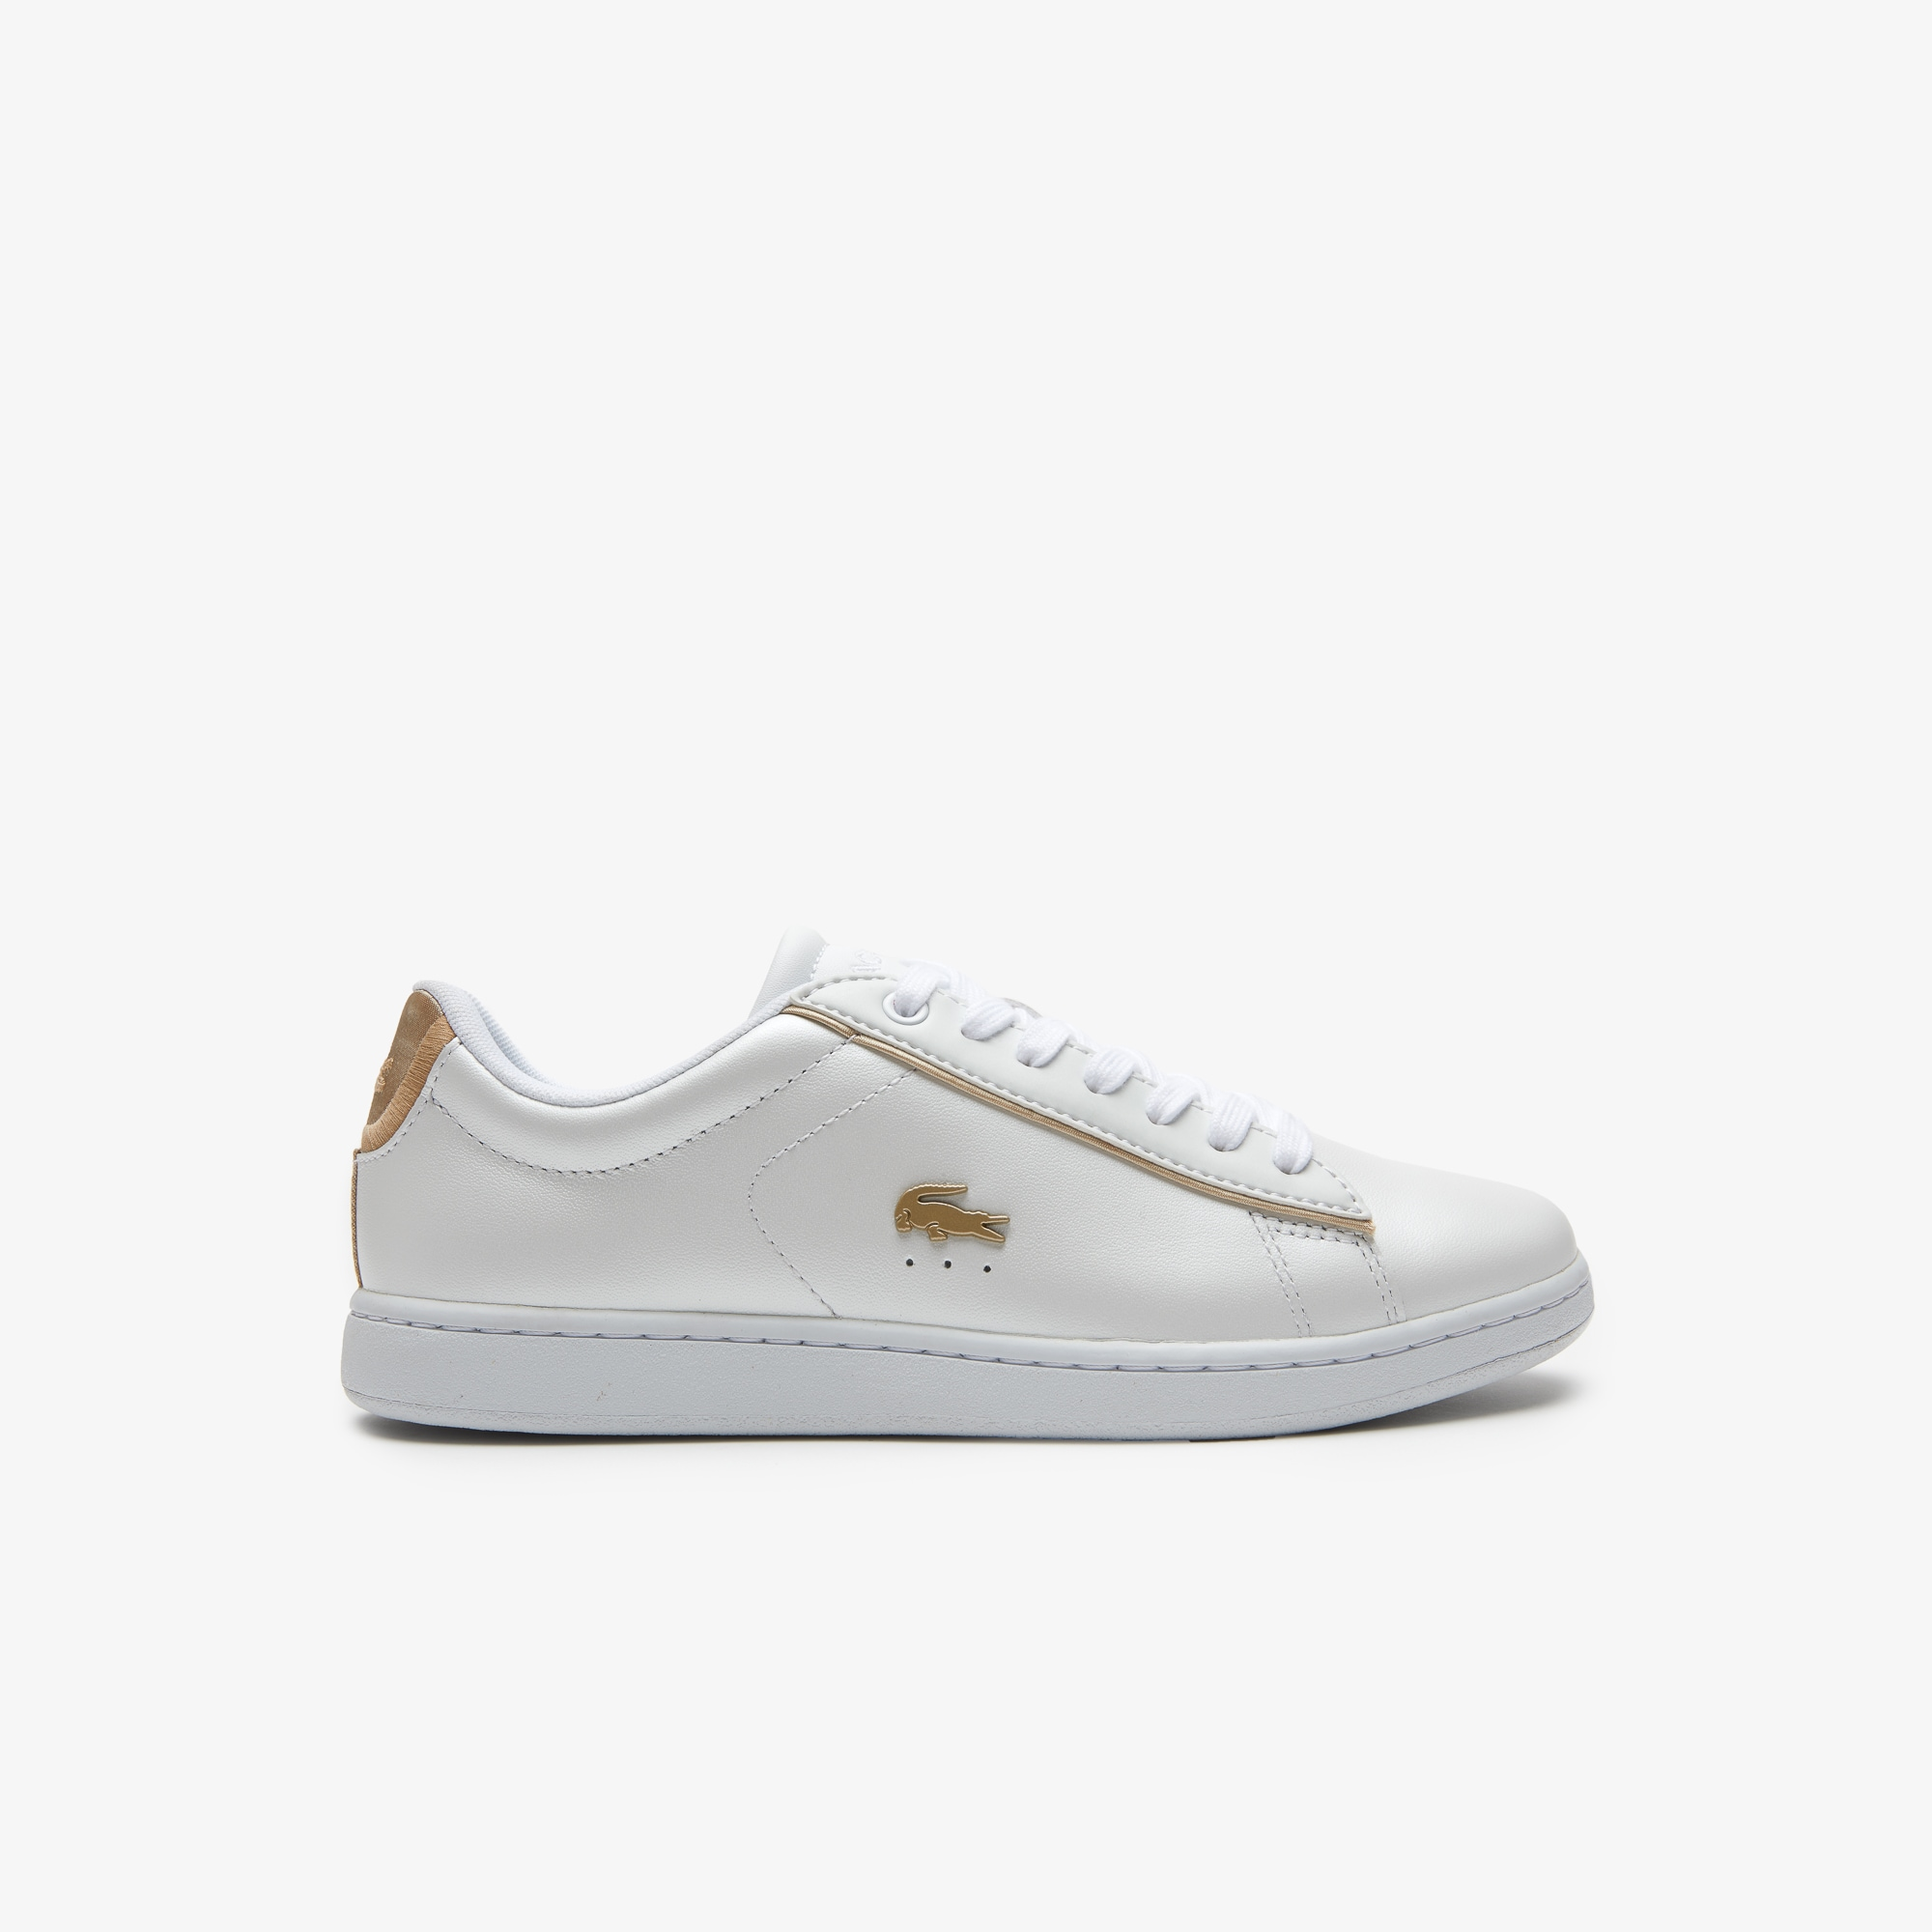 04c7d64c0 Women s Carnaby Evo Contrast Leather Sneakers